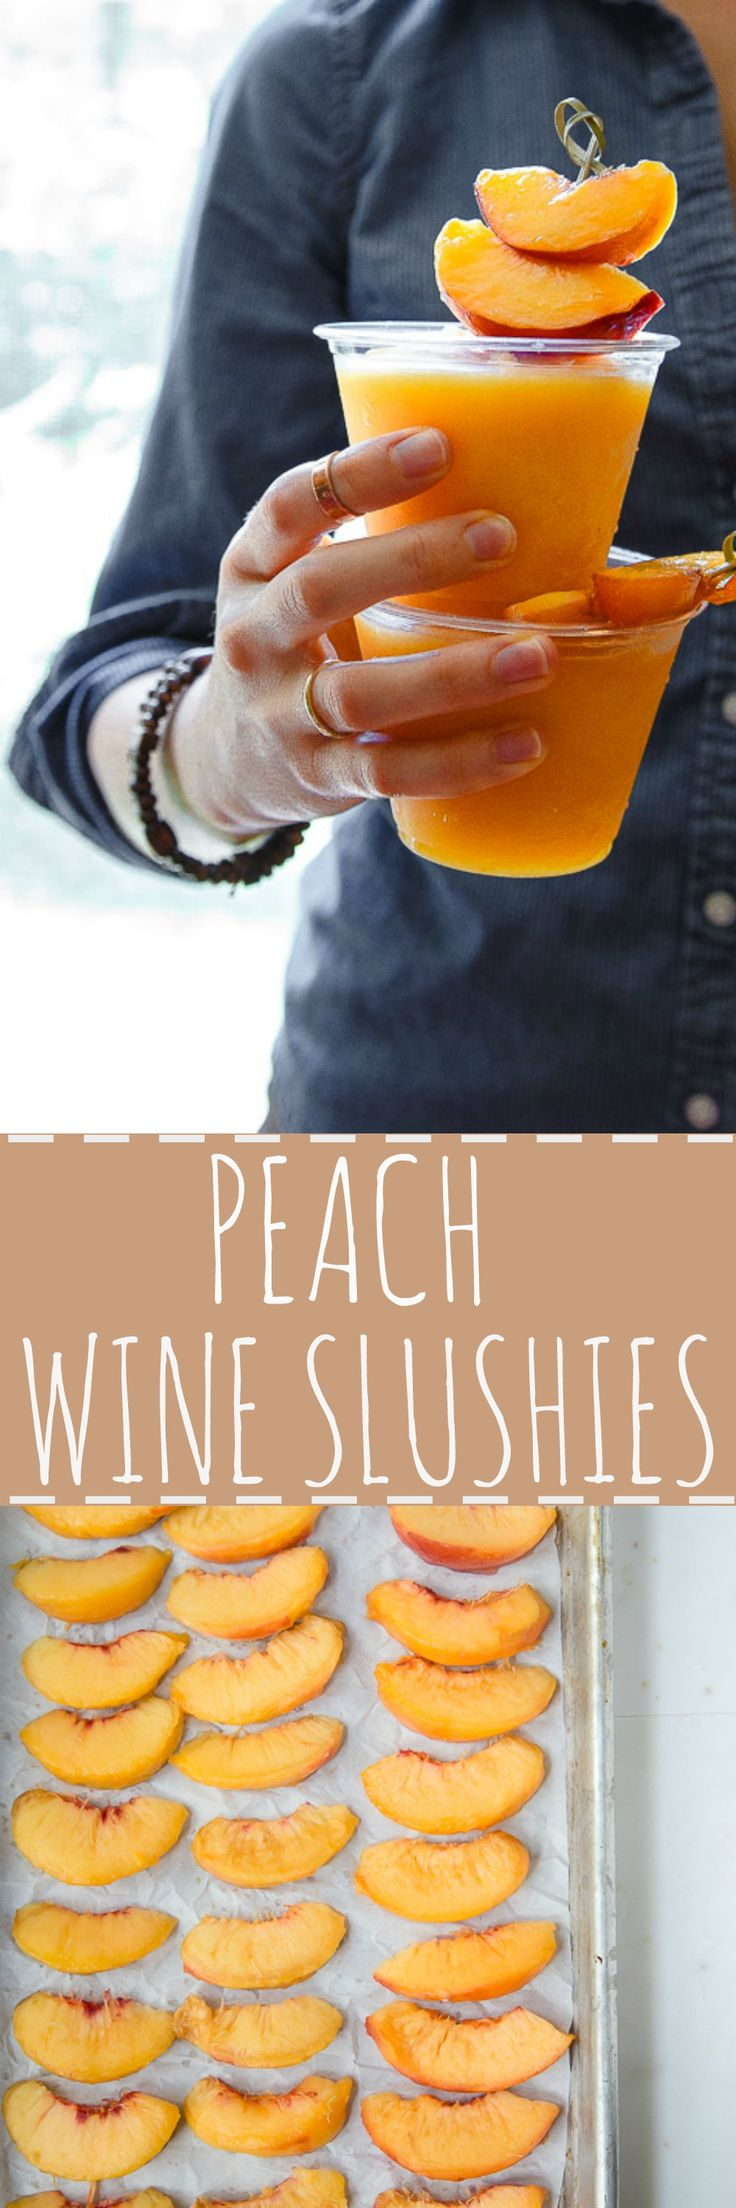 Peach Wine Slushies. Use any kind of frozen fruit and any kind of wine. I